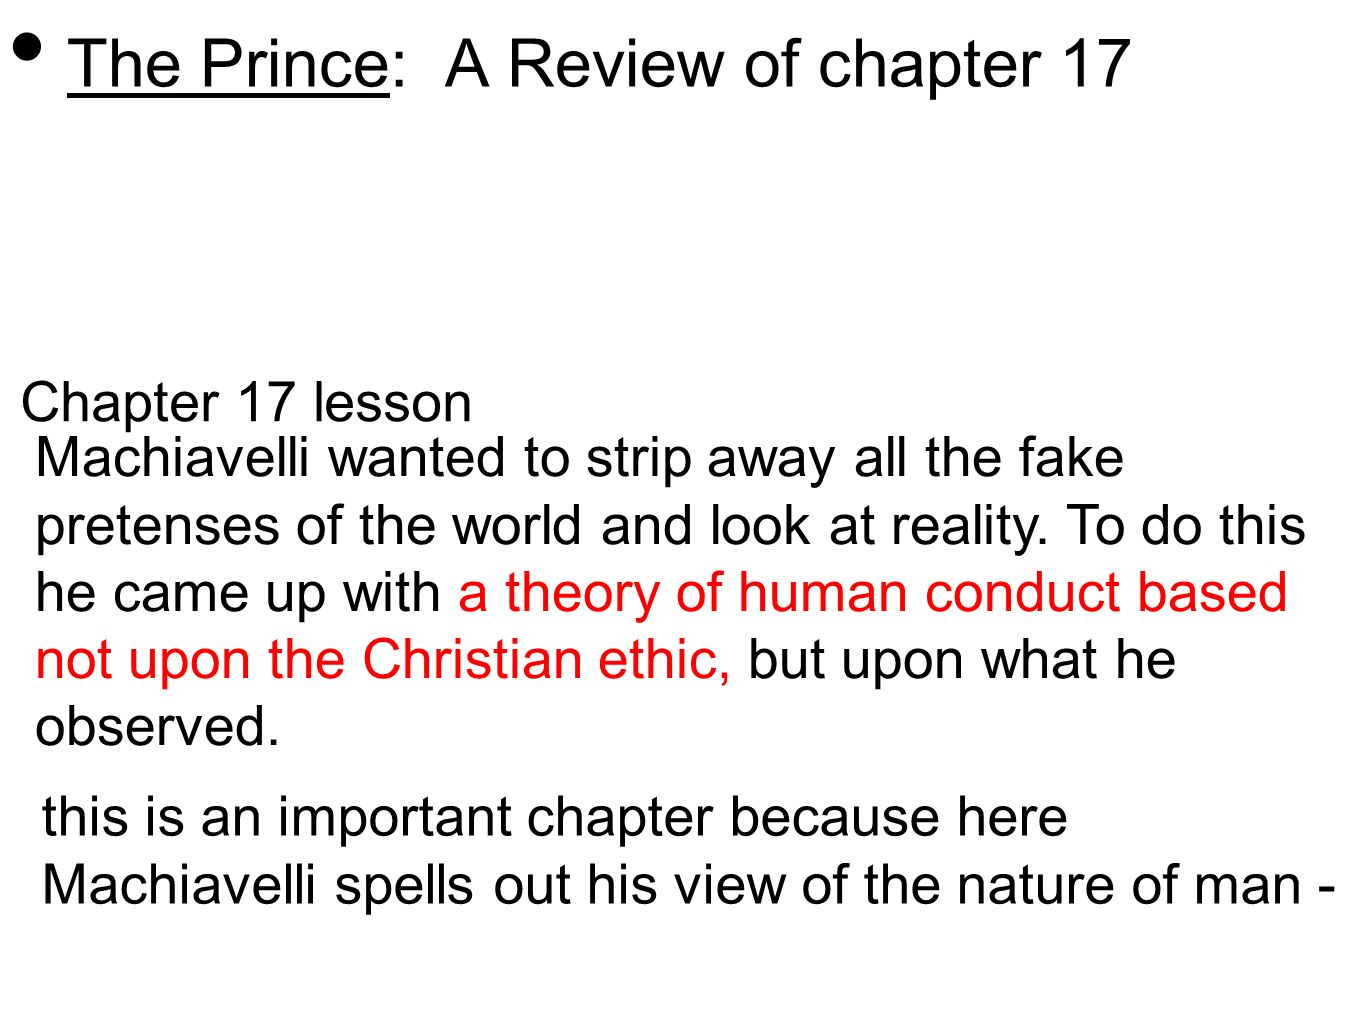 machiavelli s view of human nature in Start studying machiavelli's the prince learn vocabulary, terms, and more with flashcards, games, and other study tools search create chapter 17: what is machiavelli's view of human nature, or what motives human behavior humans are controlled by self-interest.